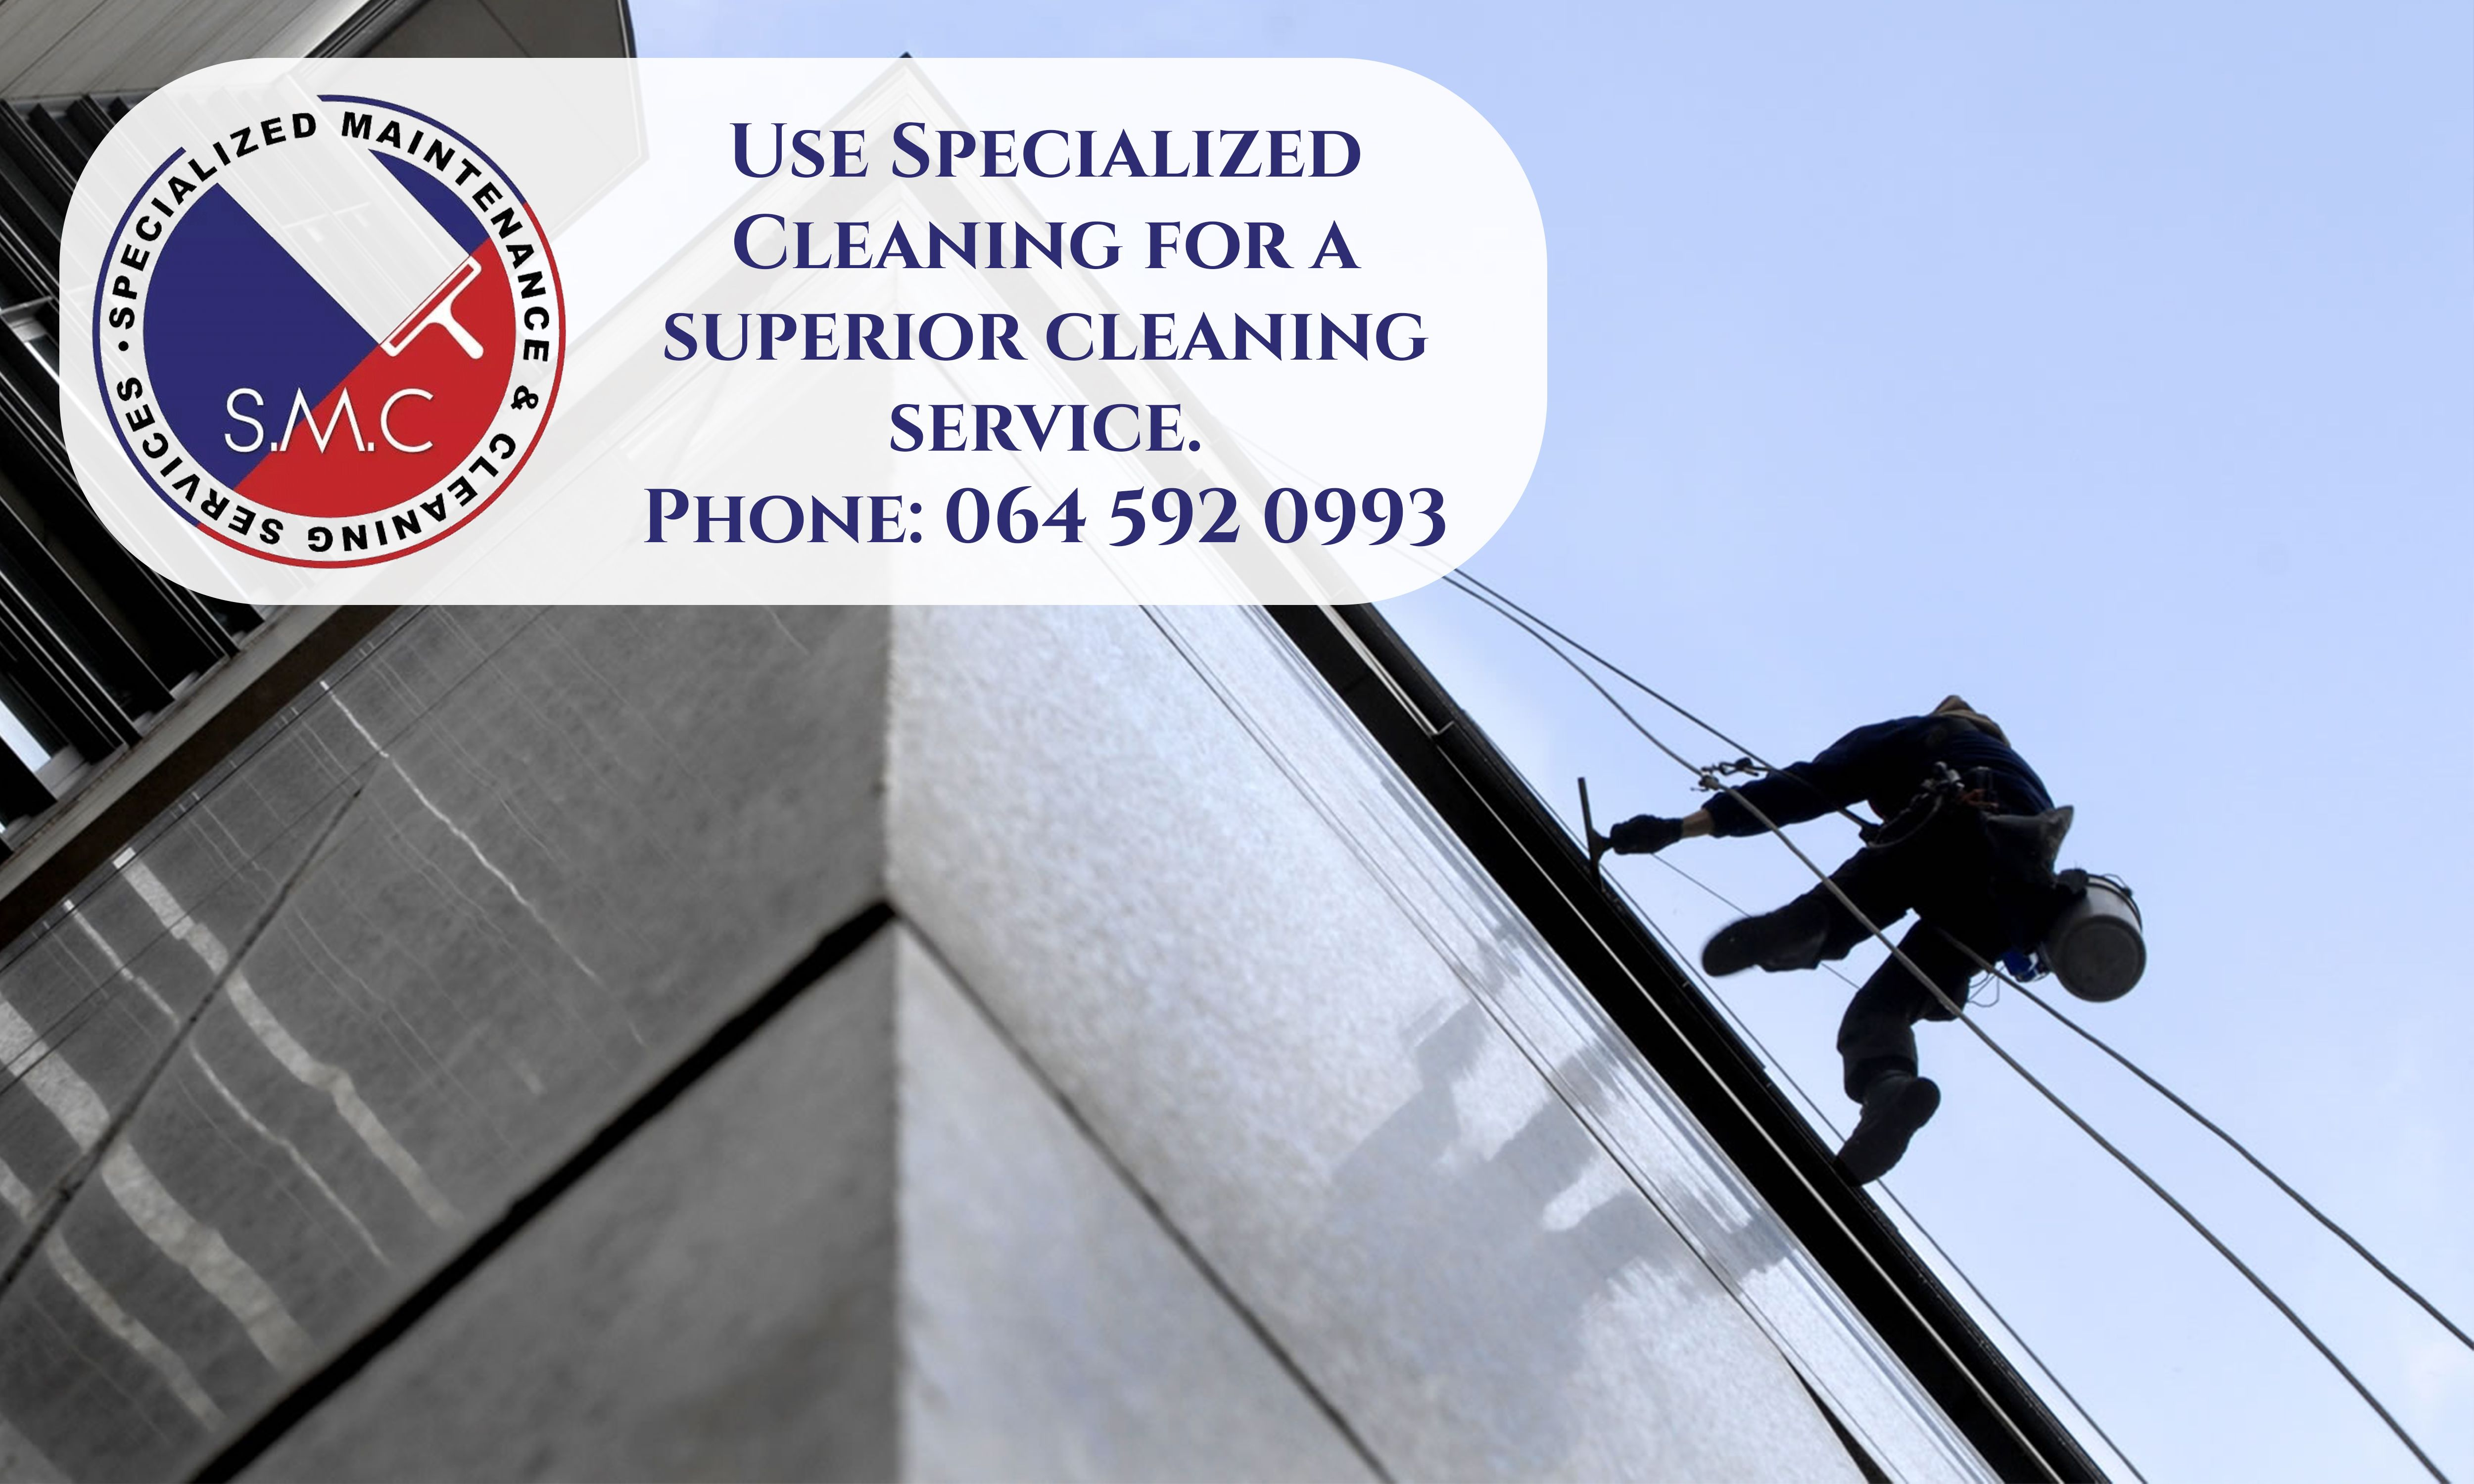 Use specialized cleaning for a superior cleaning service